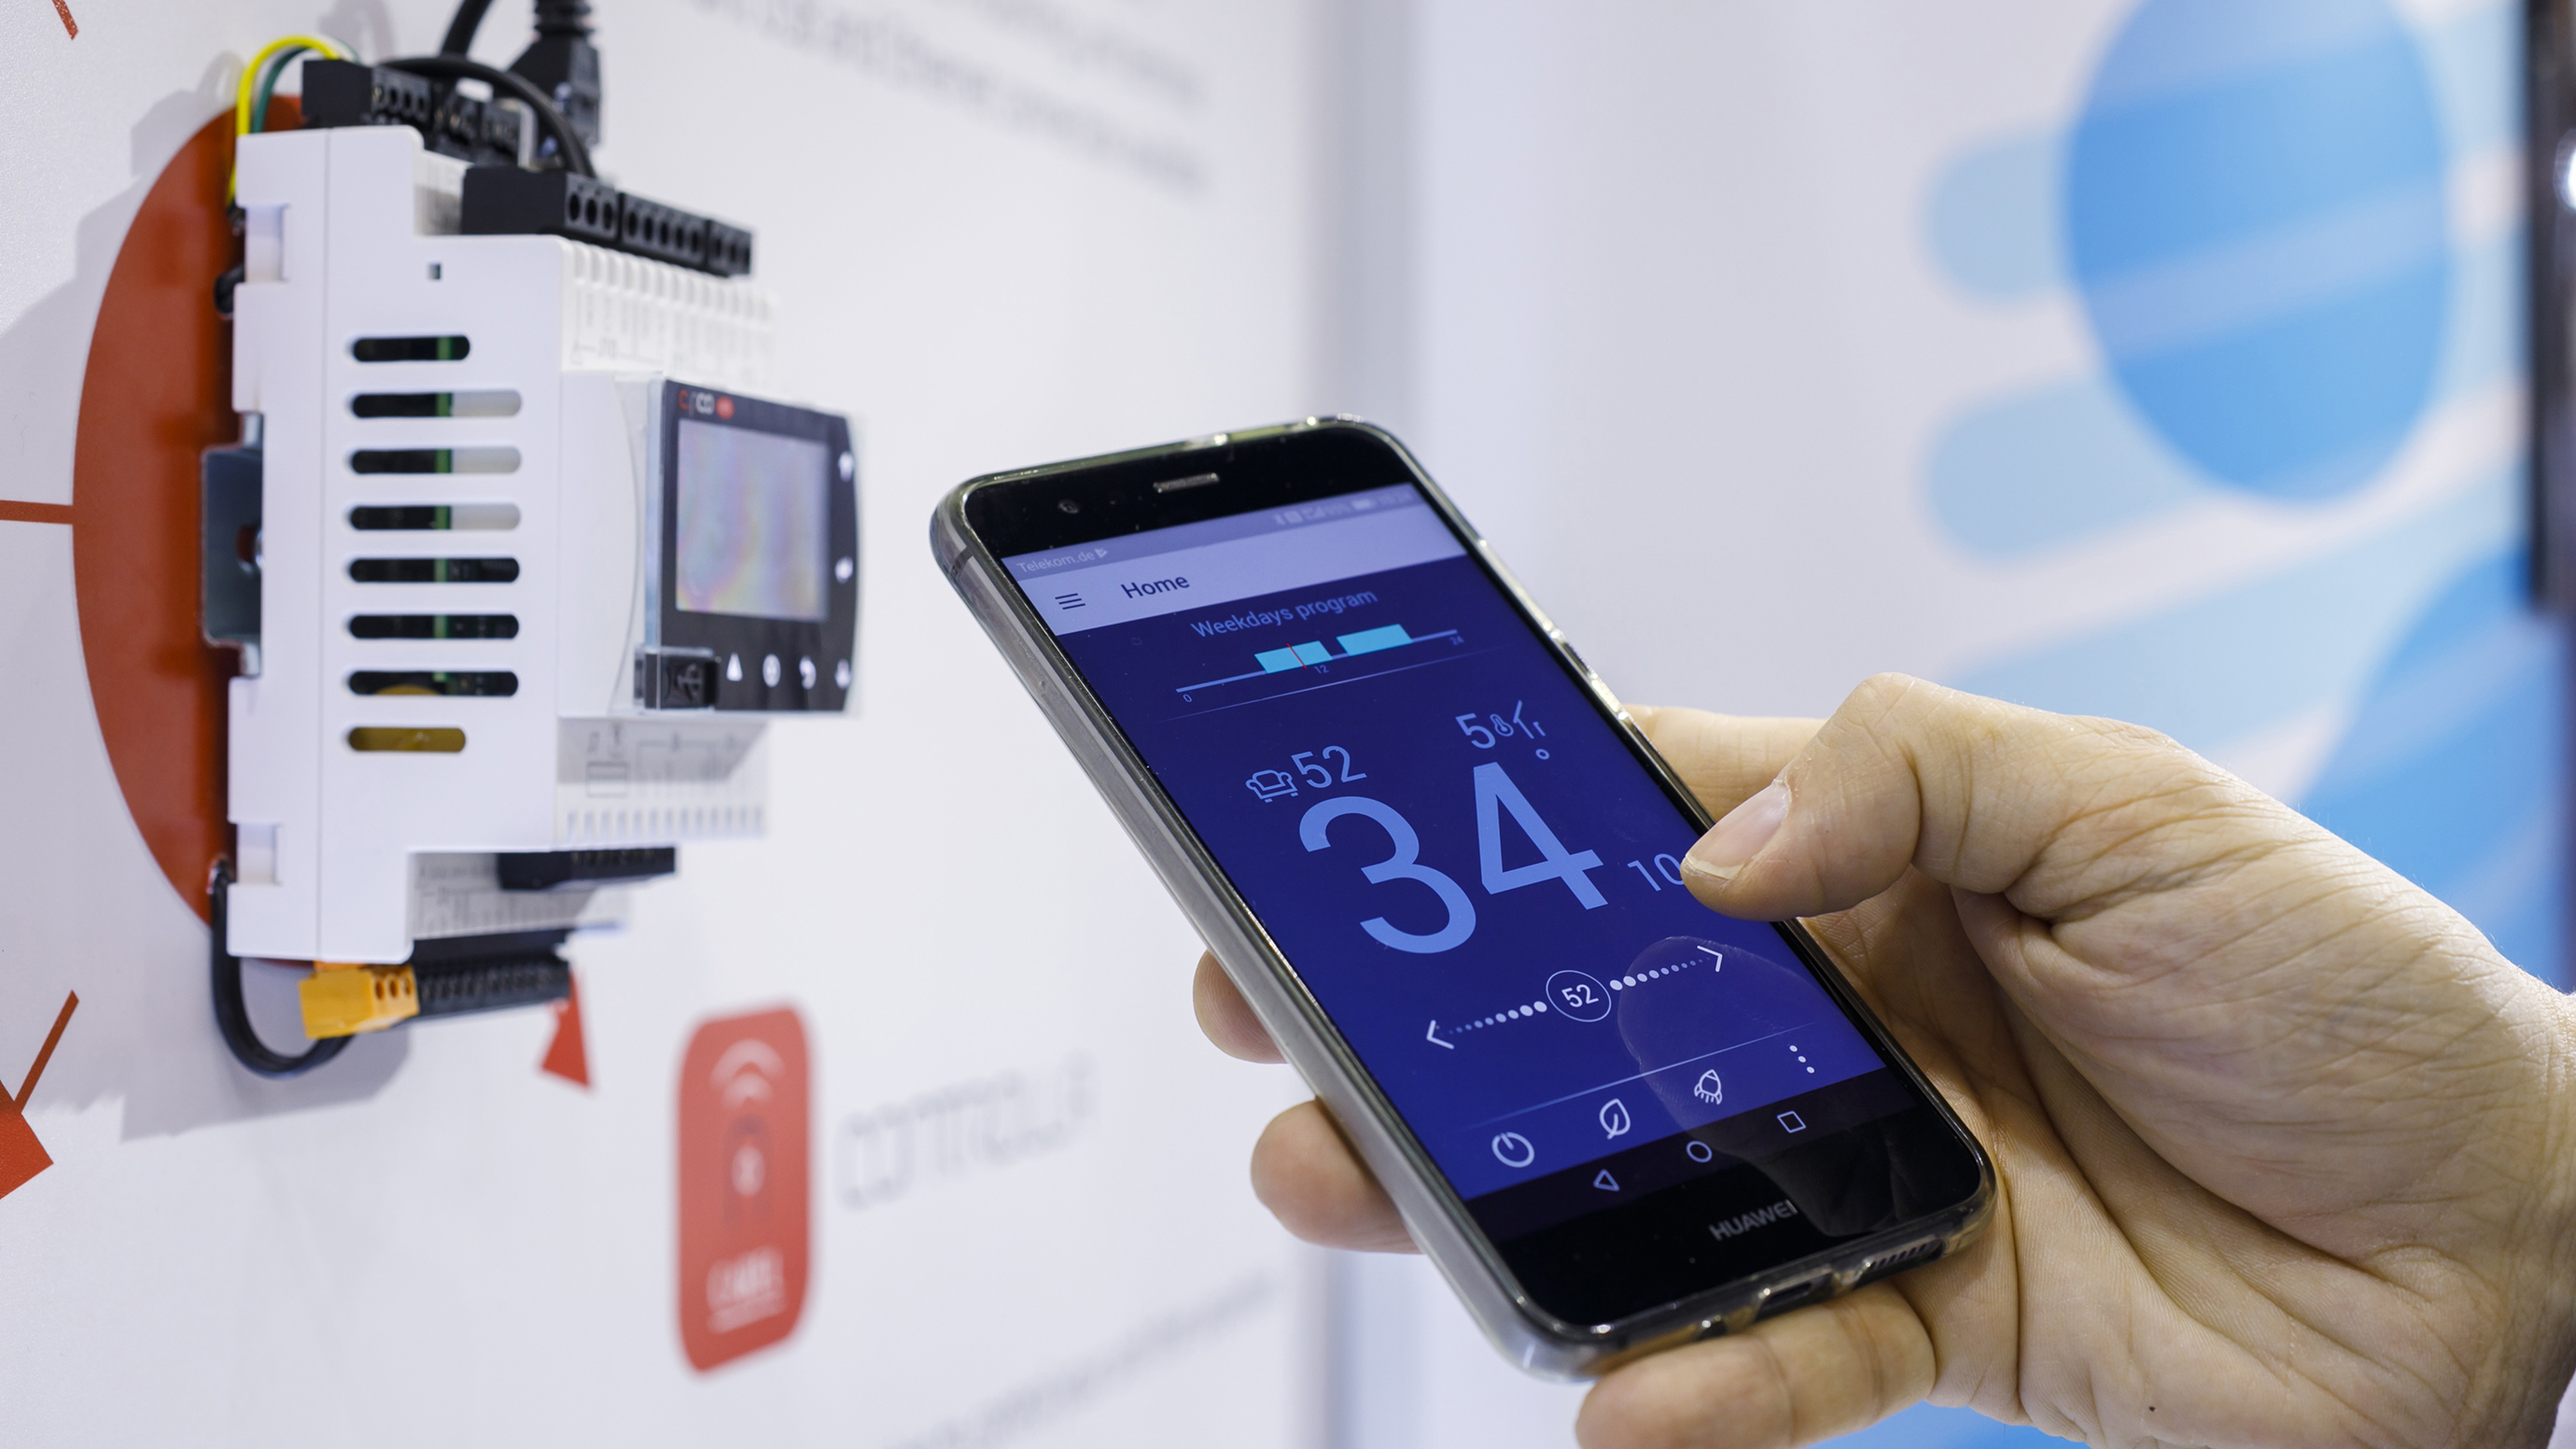 Smartphone with temperature display